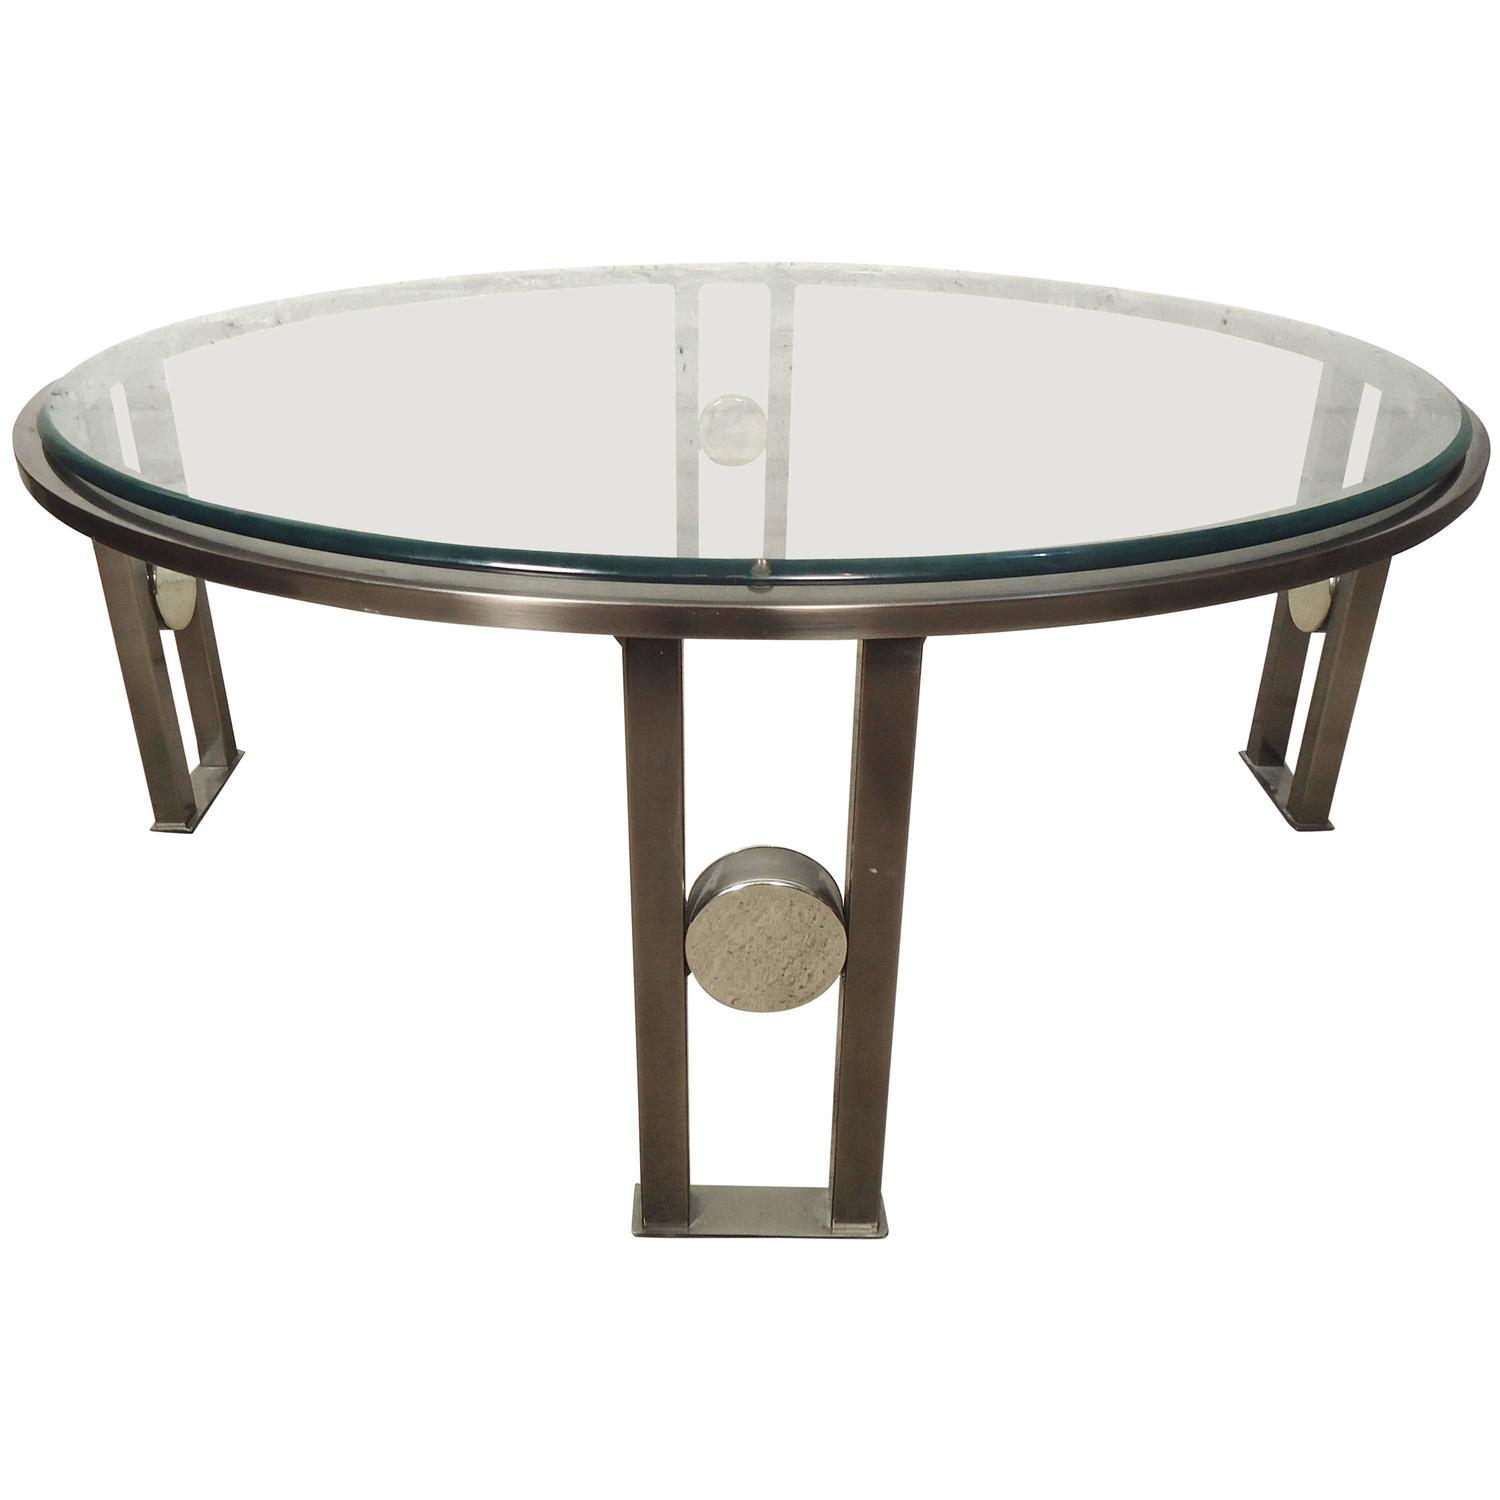 Round glass top coffee table at 1stdibs Coffee tables glass top